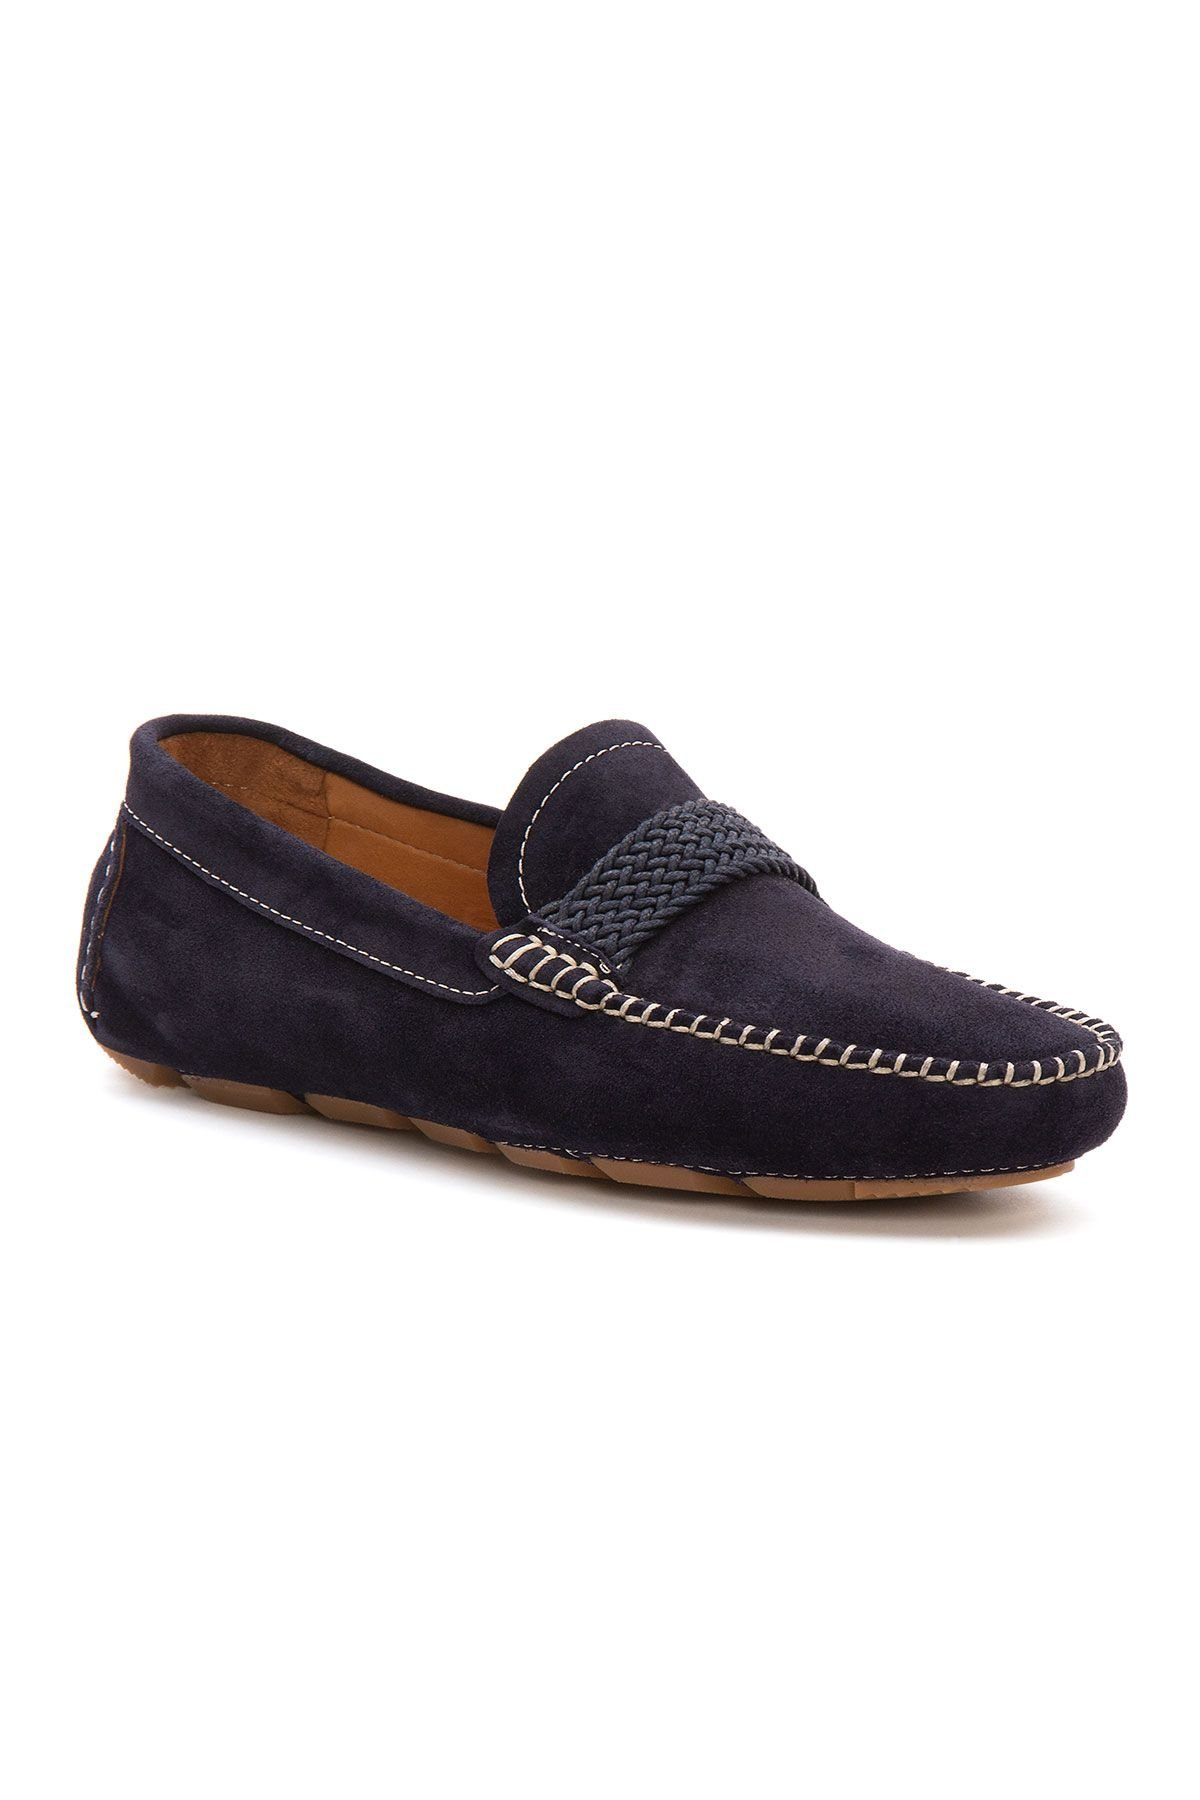 Pegia Genuine Suede Men's Loafer Shoes 500904 Navy blue